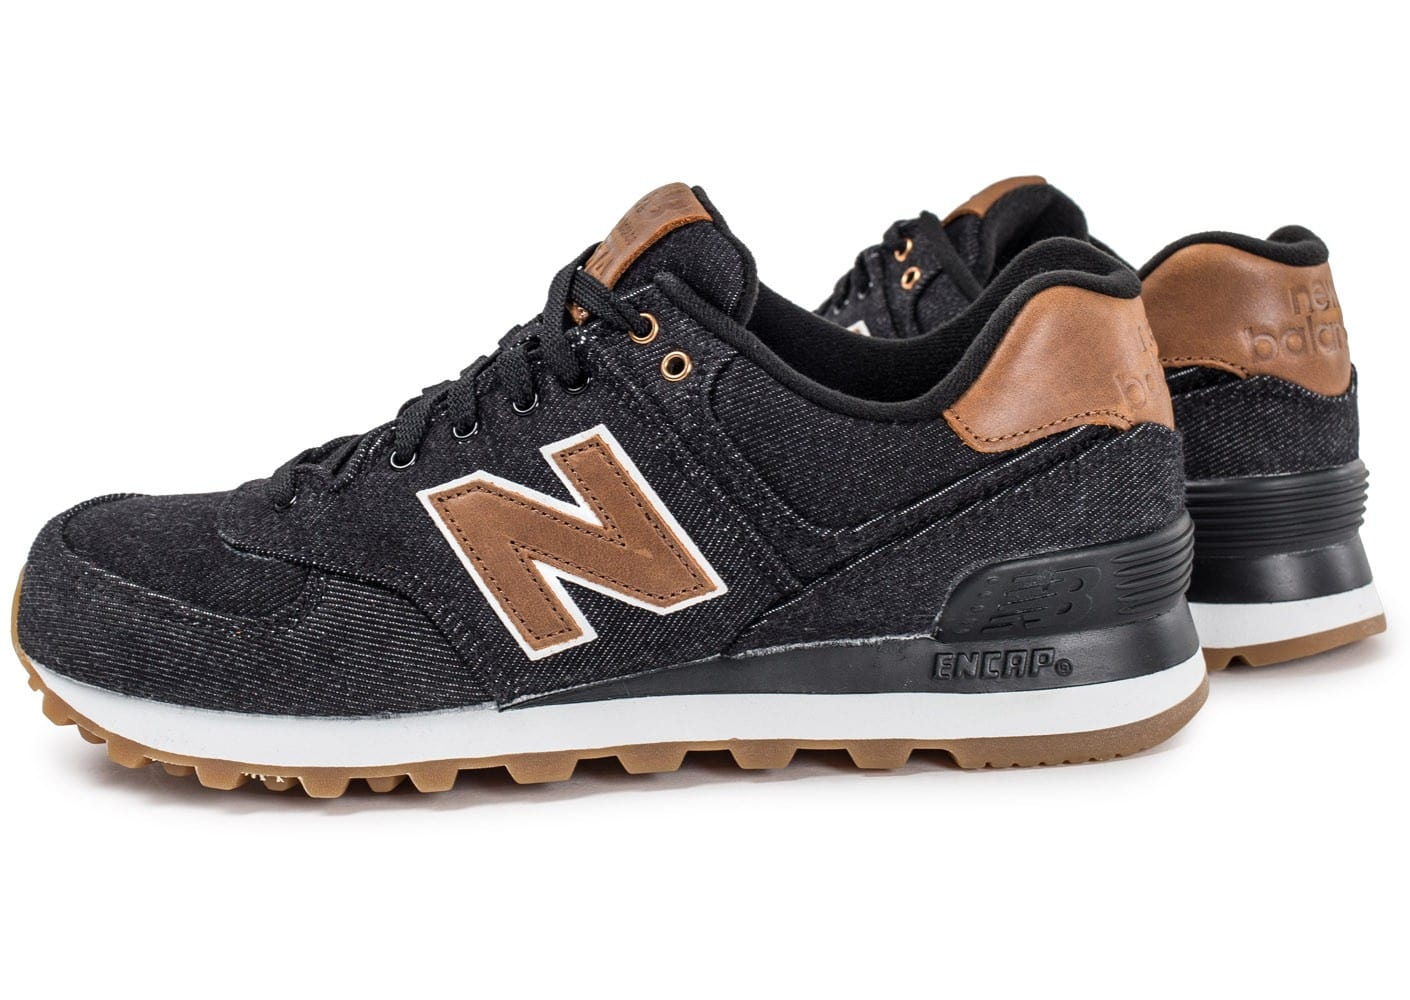 new balance ml574txa denim noire et marron chaussures baskets homme chausport. Black Bedroom Furniture Sets. Home Design Ideas